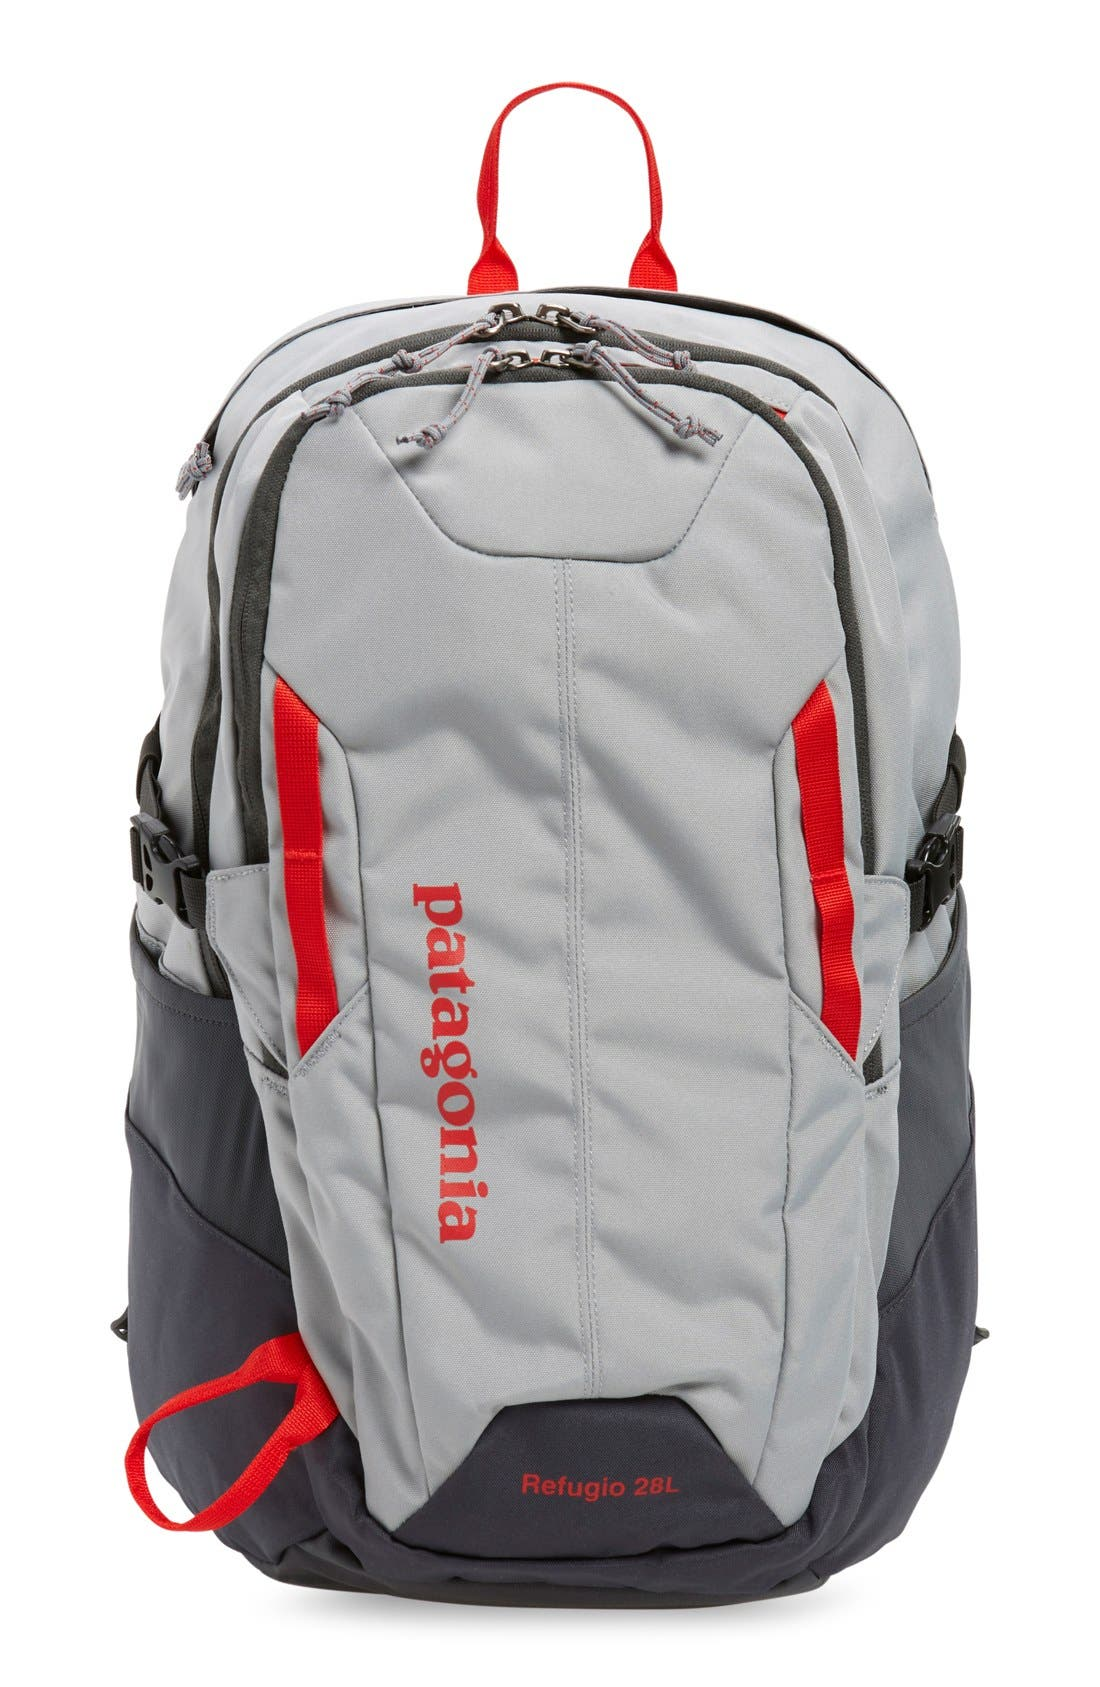 Alternate Image 1 Selected - Patagonia 'Refugio 28L' Backpack